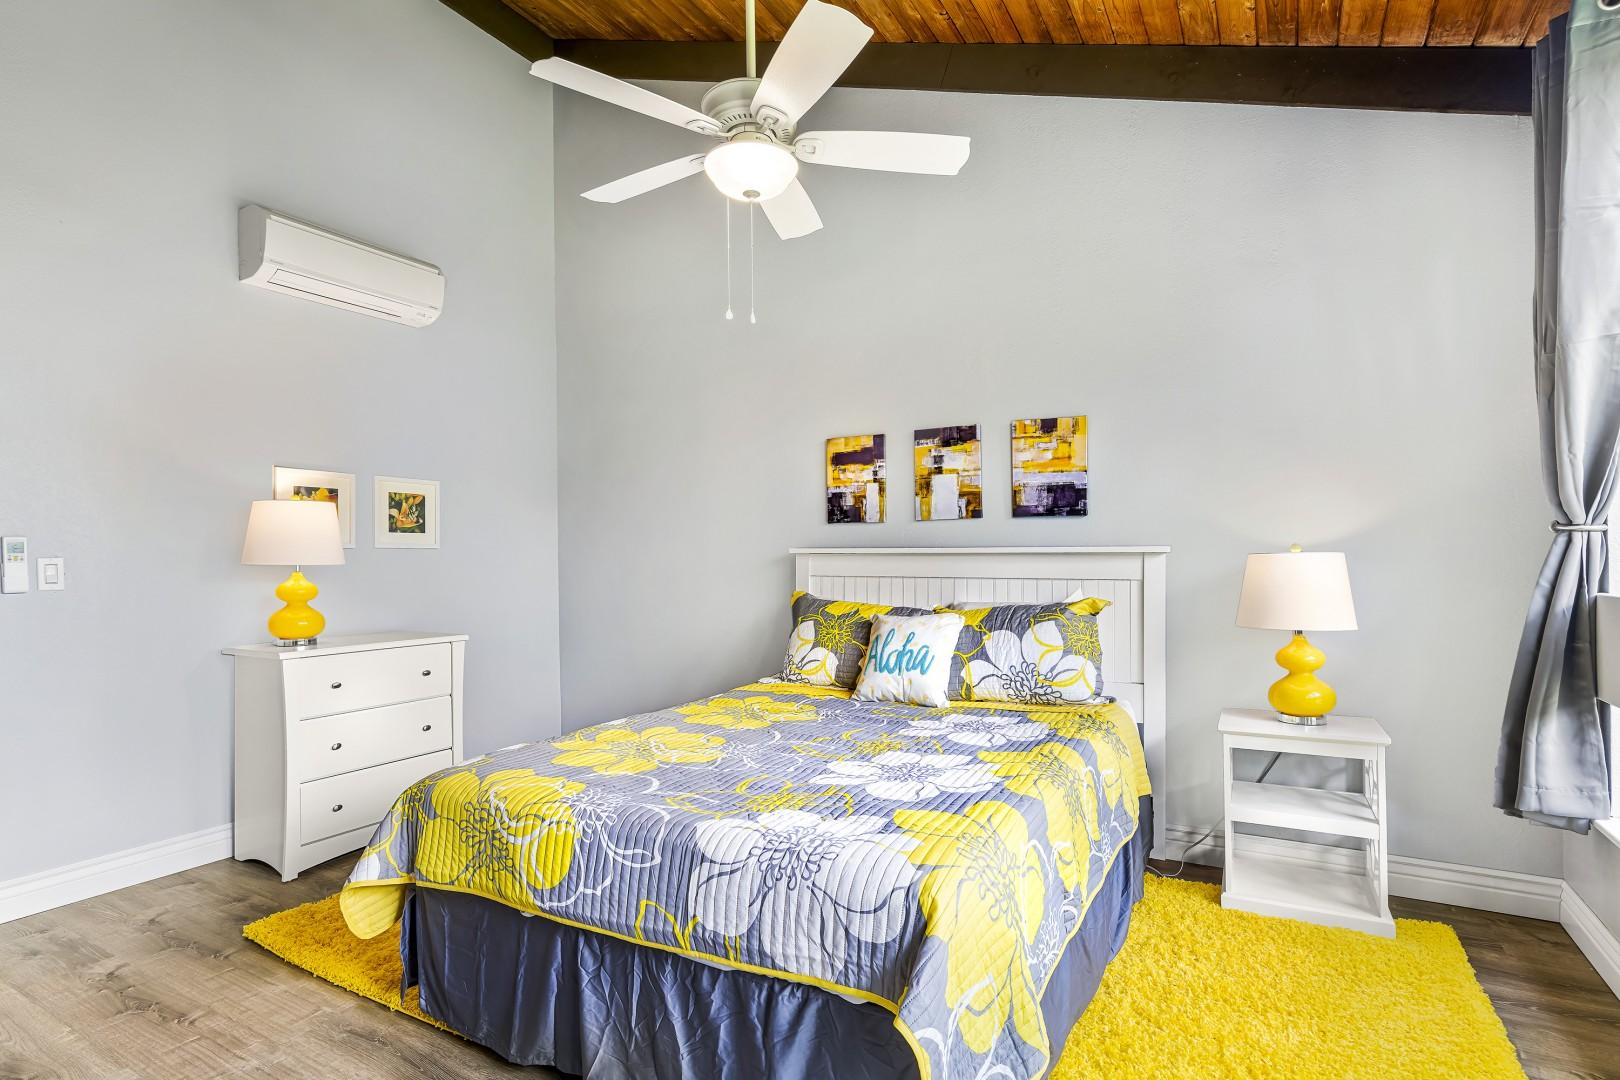 The bedroom is a reminder of the state flower, the Yellow Hibiscus